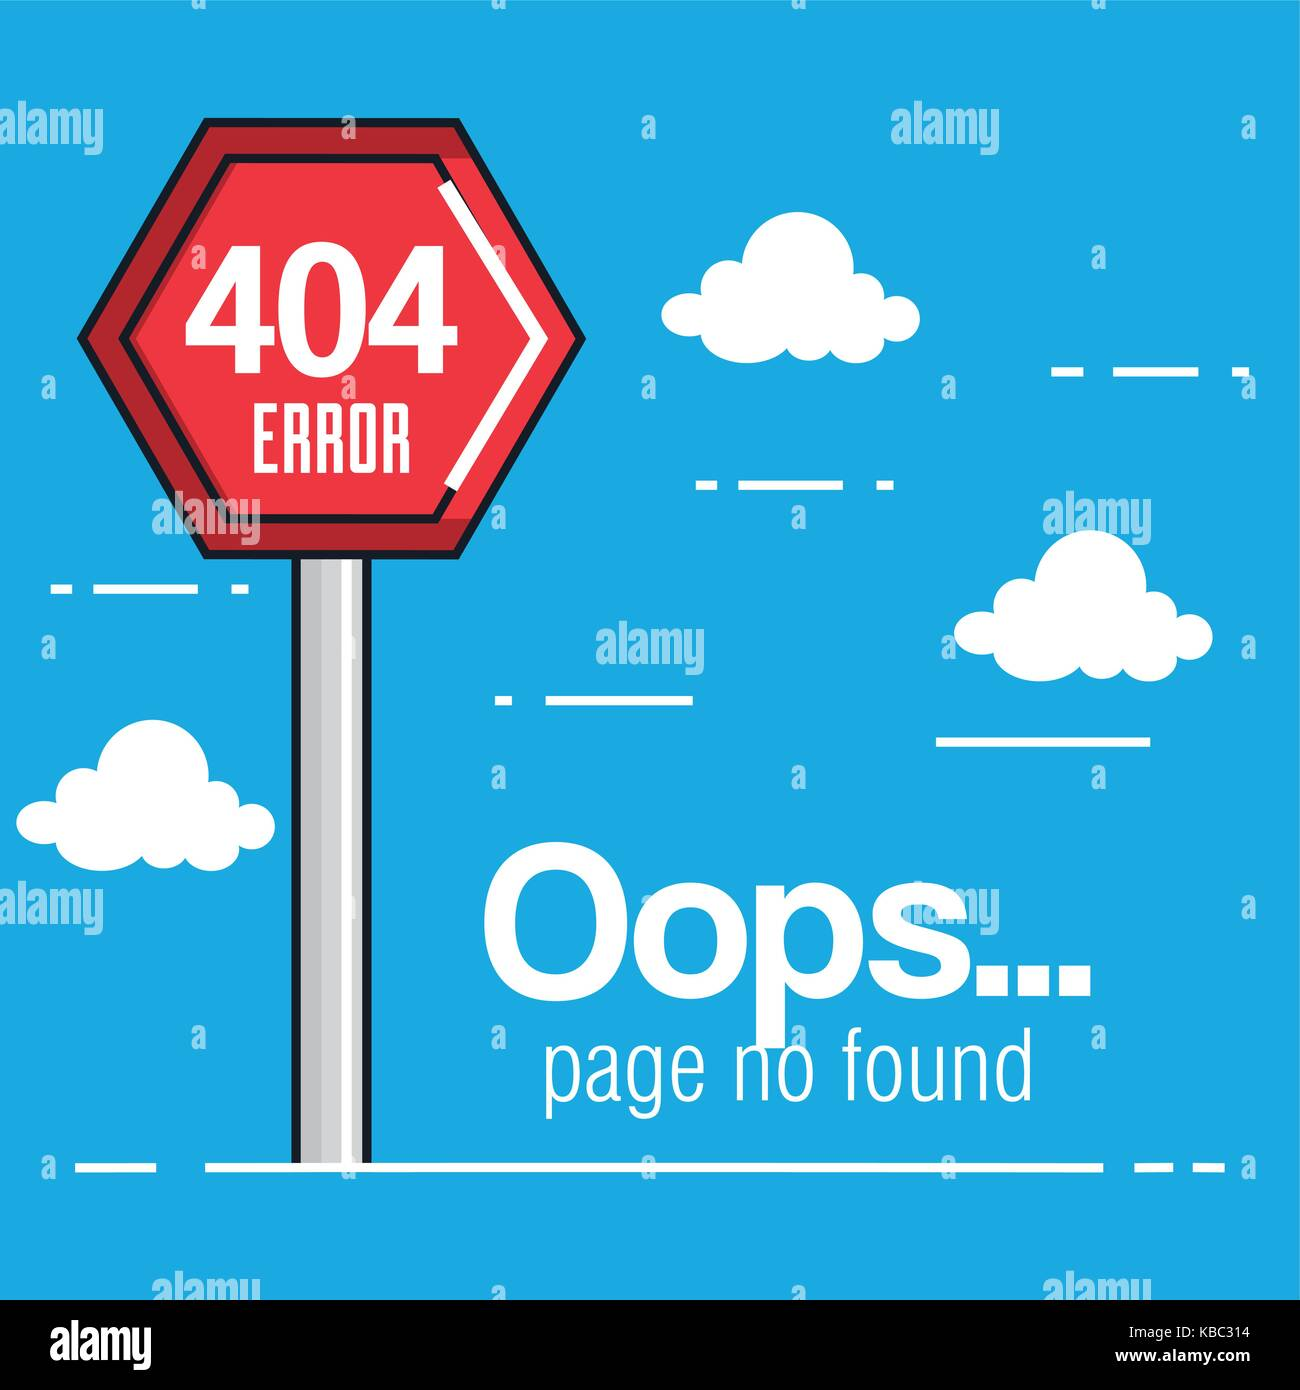 oops page no found concept - Stock Image